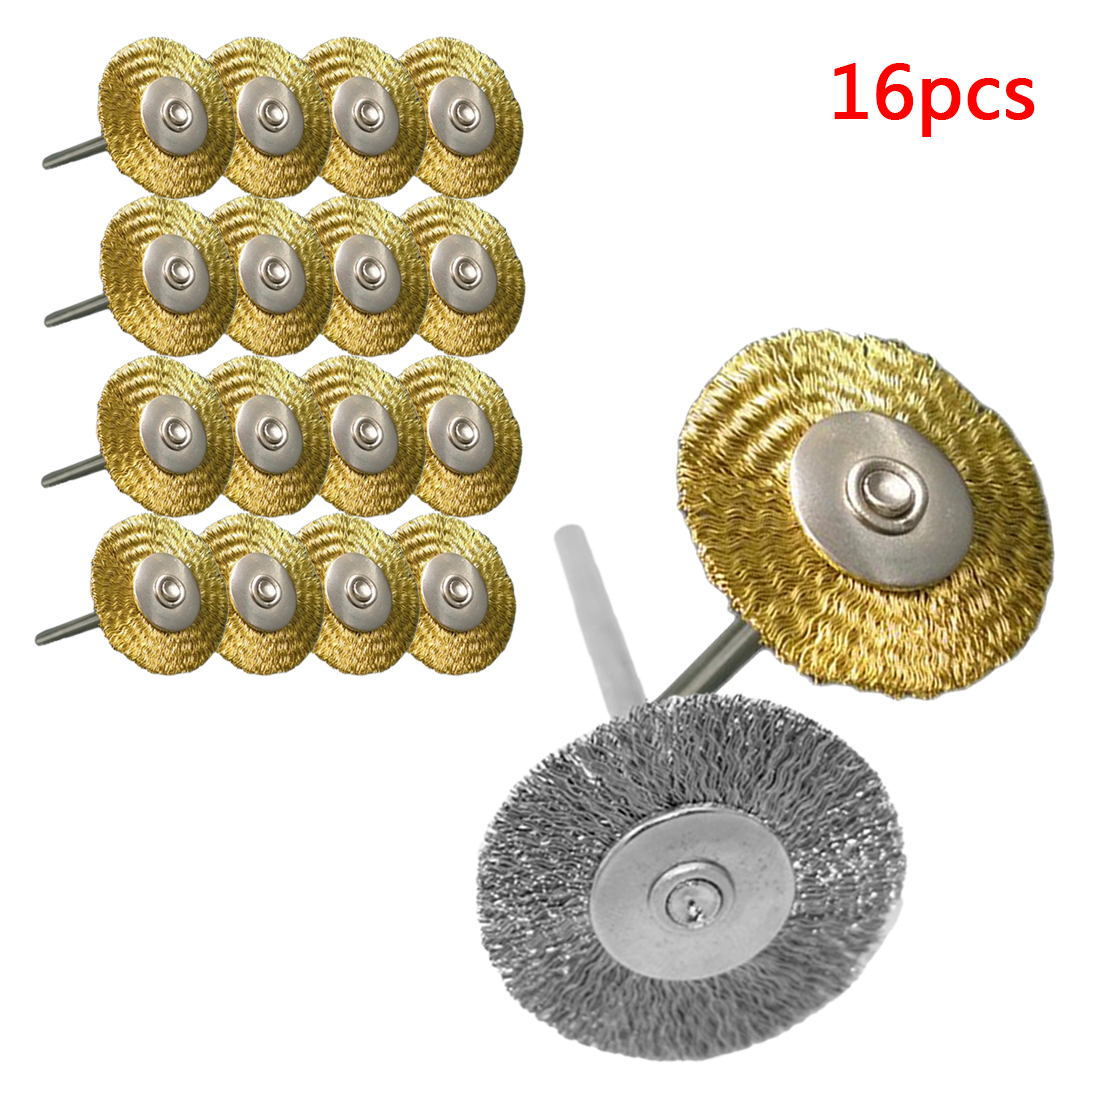 Polishing Dremel Brush 16pcs Stainless Steel Wire Wheel Brushes Set Kit Dremel Accessories For Mini Drill Rotary Tools